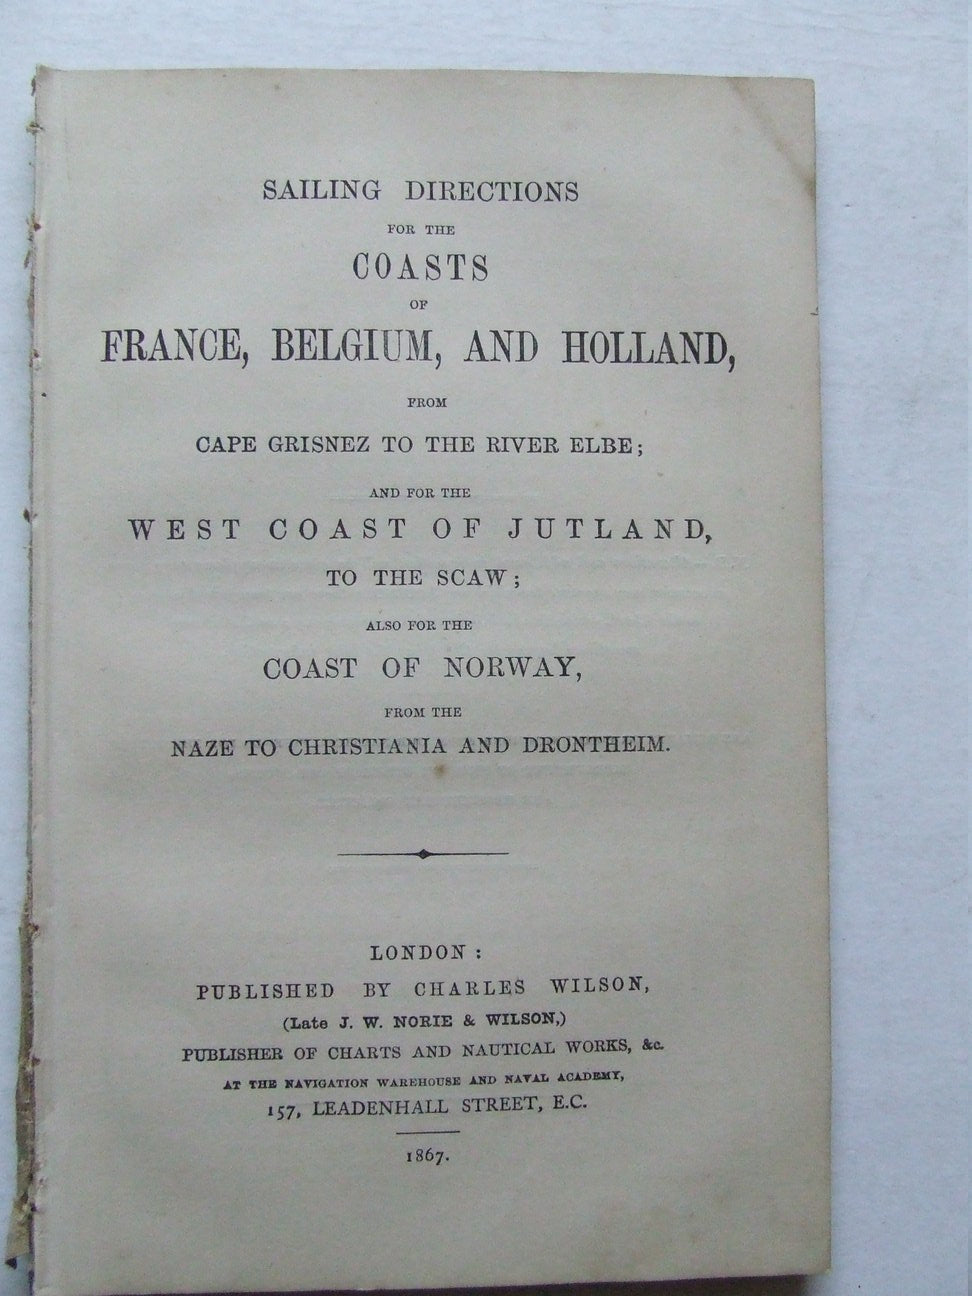 Sailing Directions for the Coasts of France, Belgium, and Holland